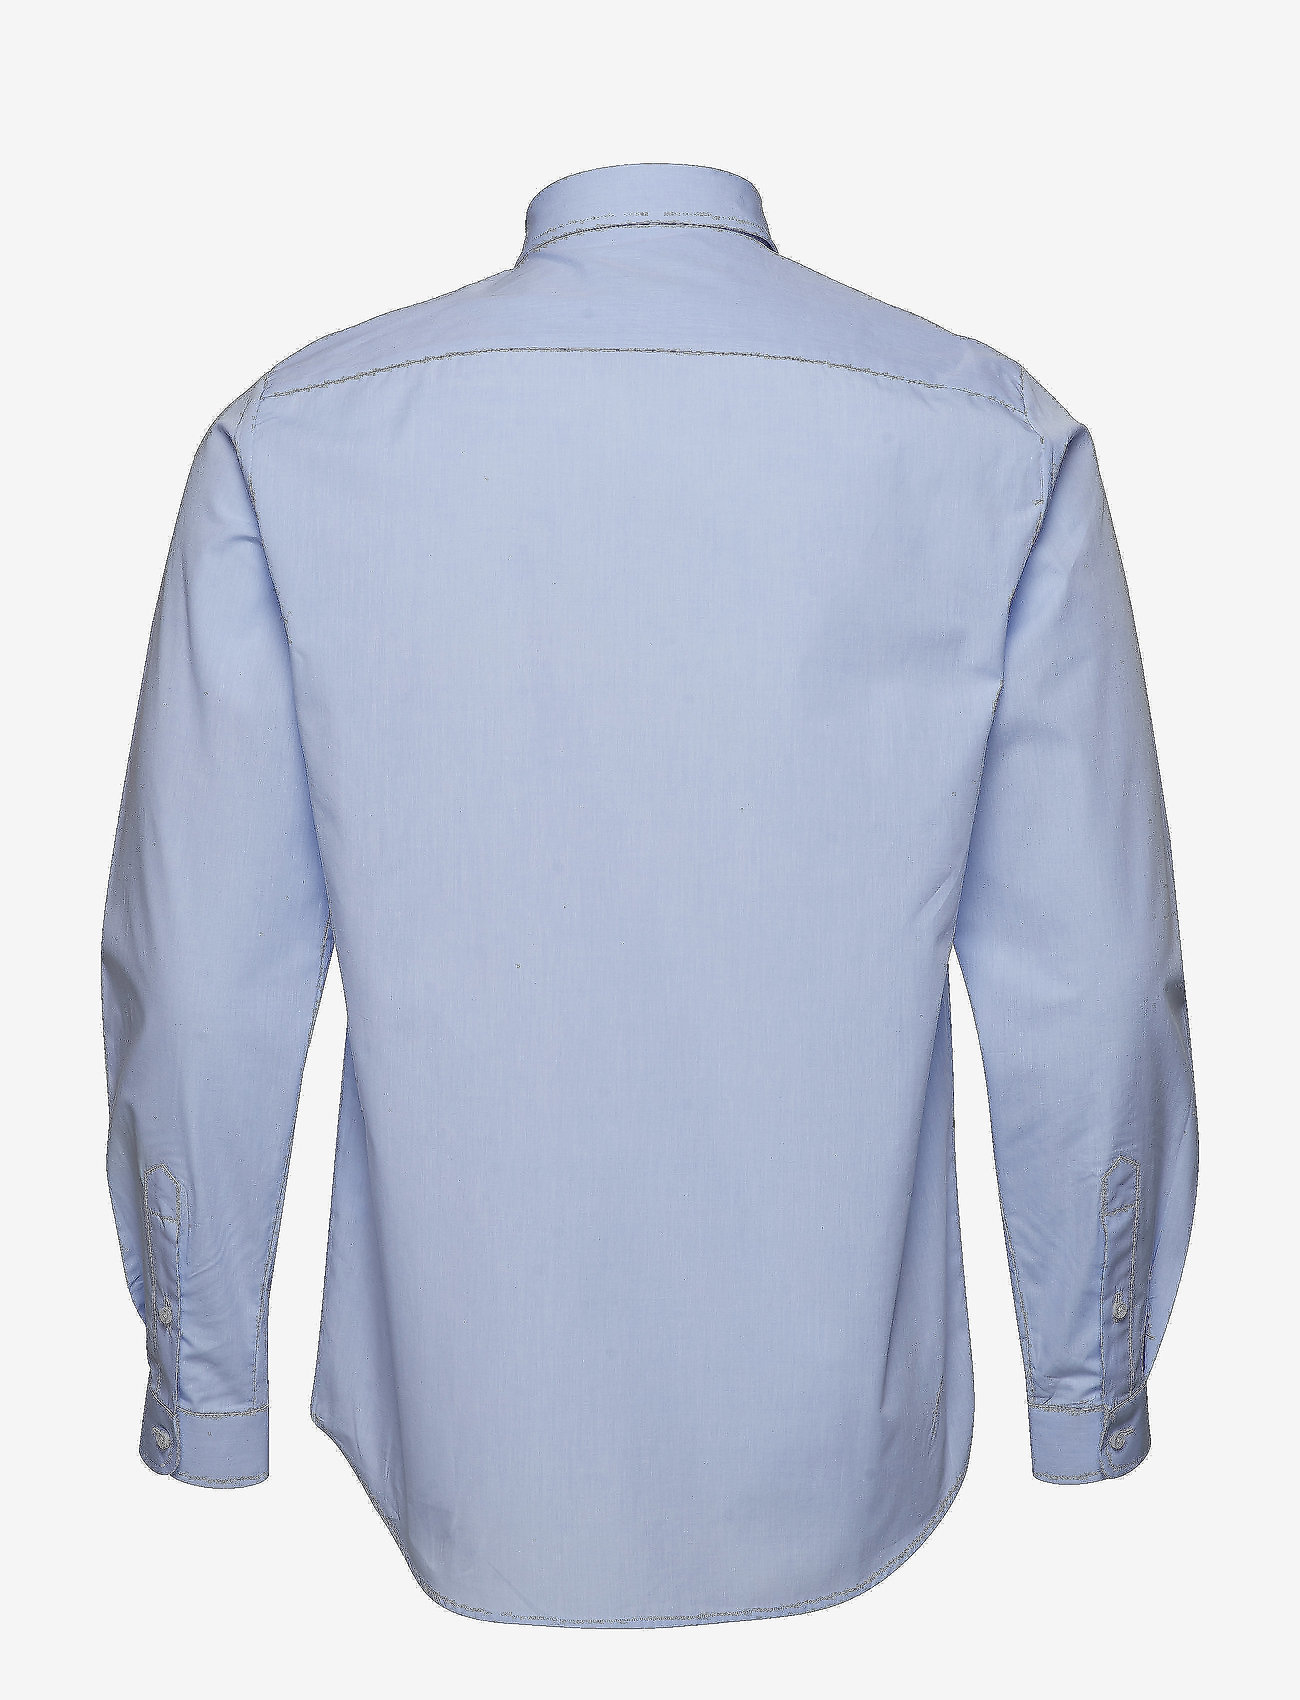 Tonsure - Regular shirt with embroidered logo - business shirts - light blue